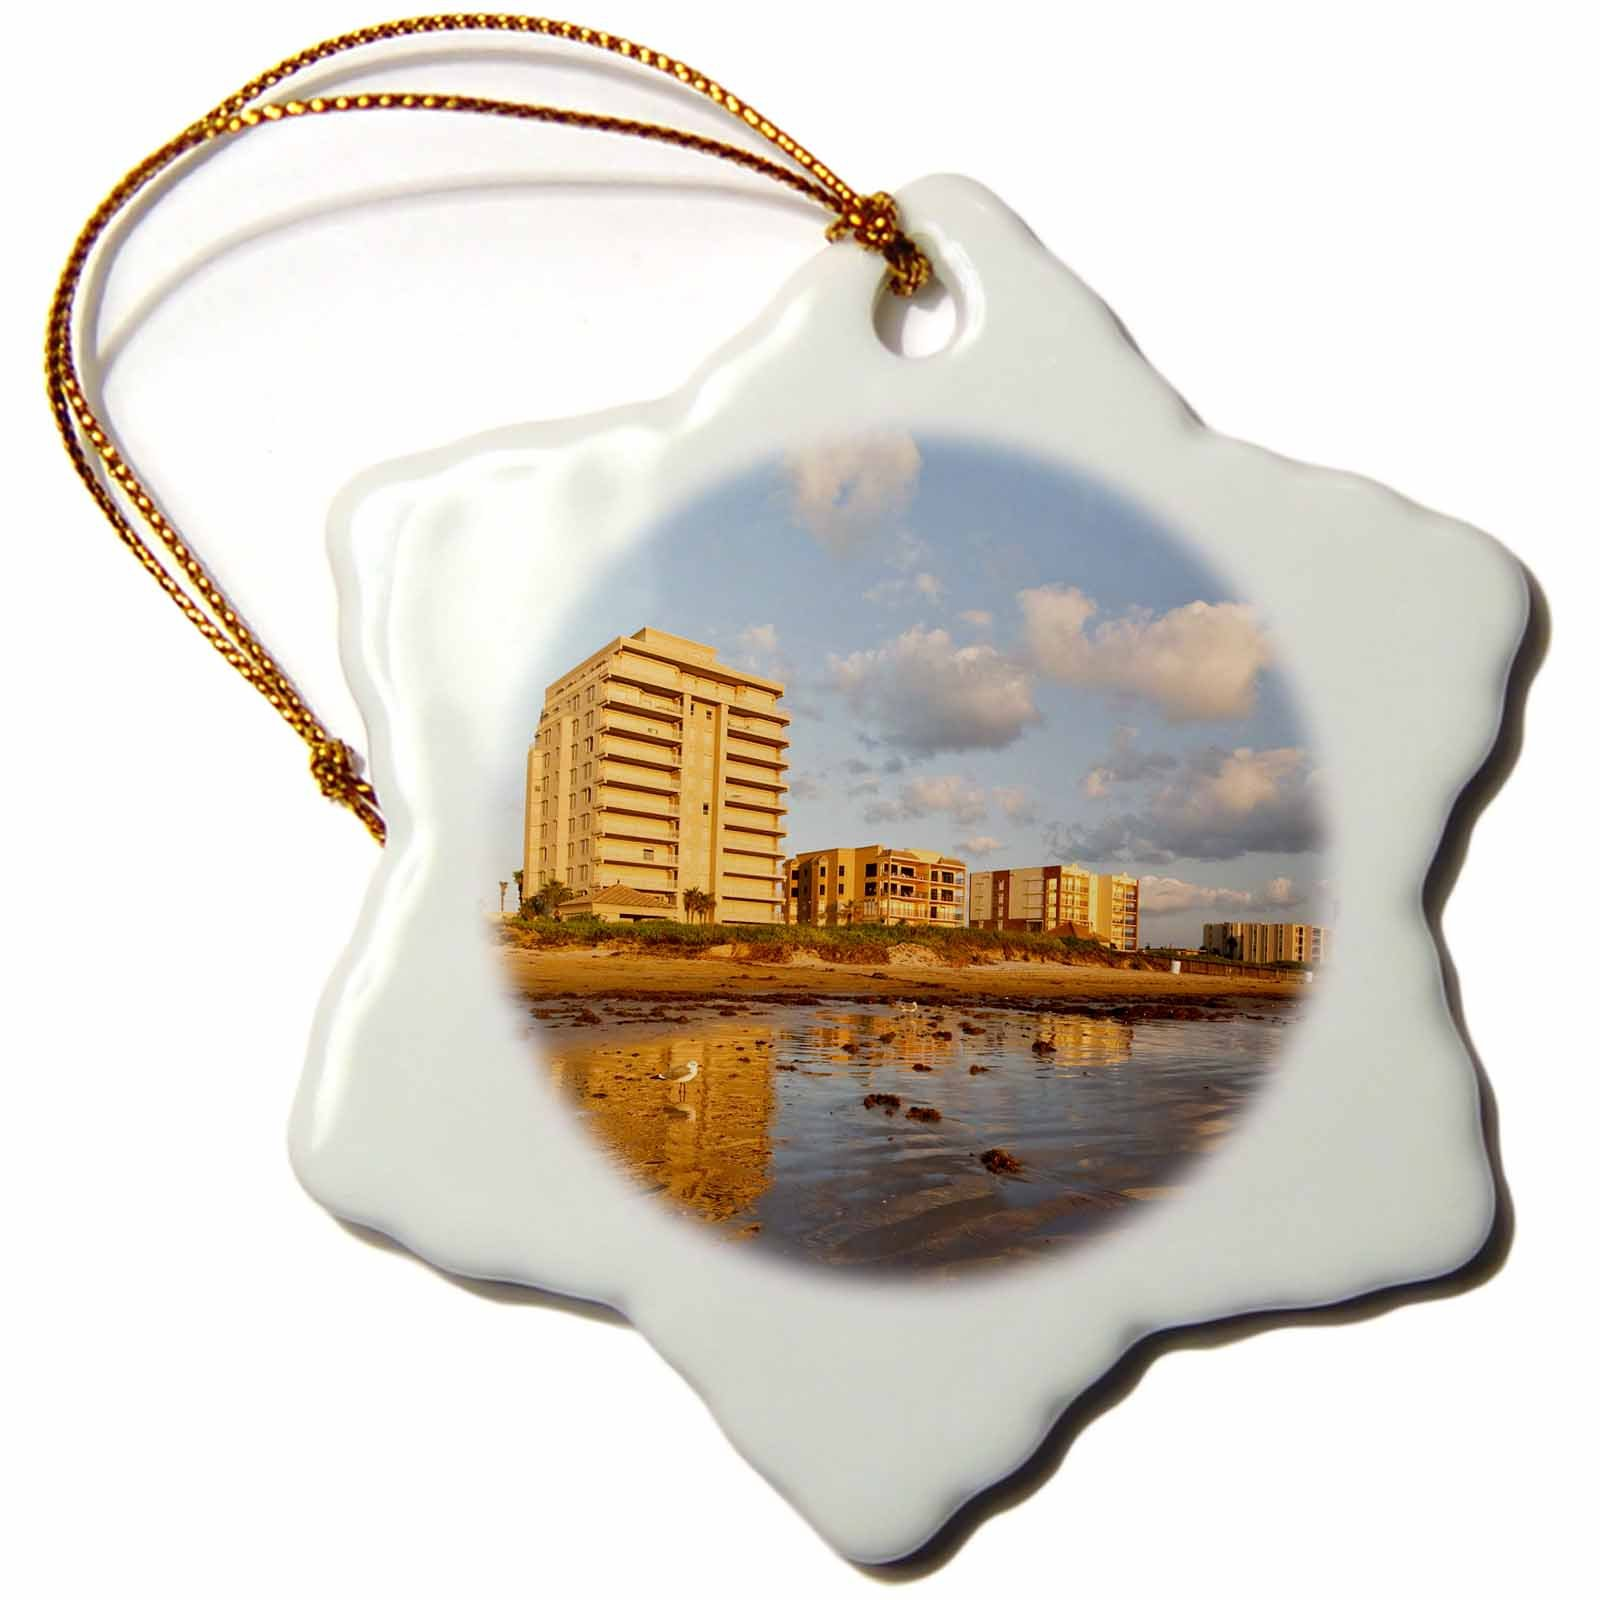 3dRose Resort hotels, beach, South Padre Island, Texas - US44 LDI0335 - Larry Ditto - Snowflake Ornament, Porcelain, 3-inch (orn_94475_1)